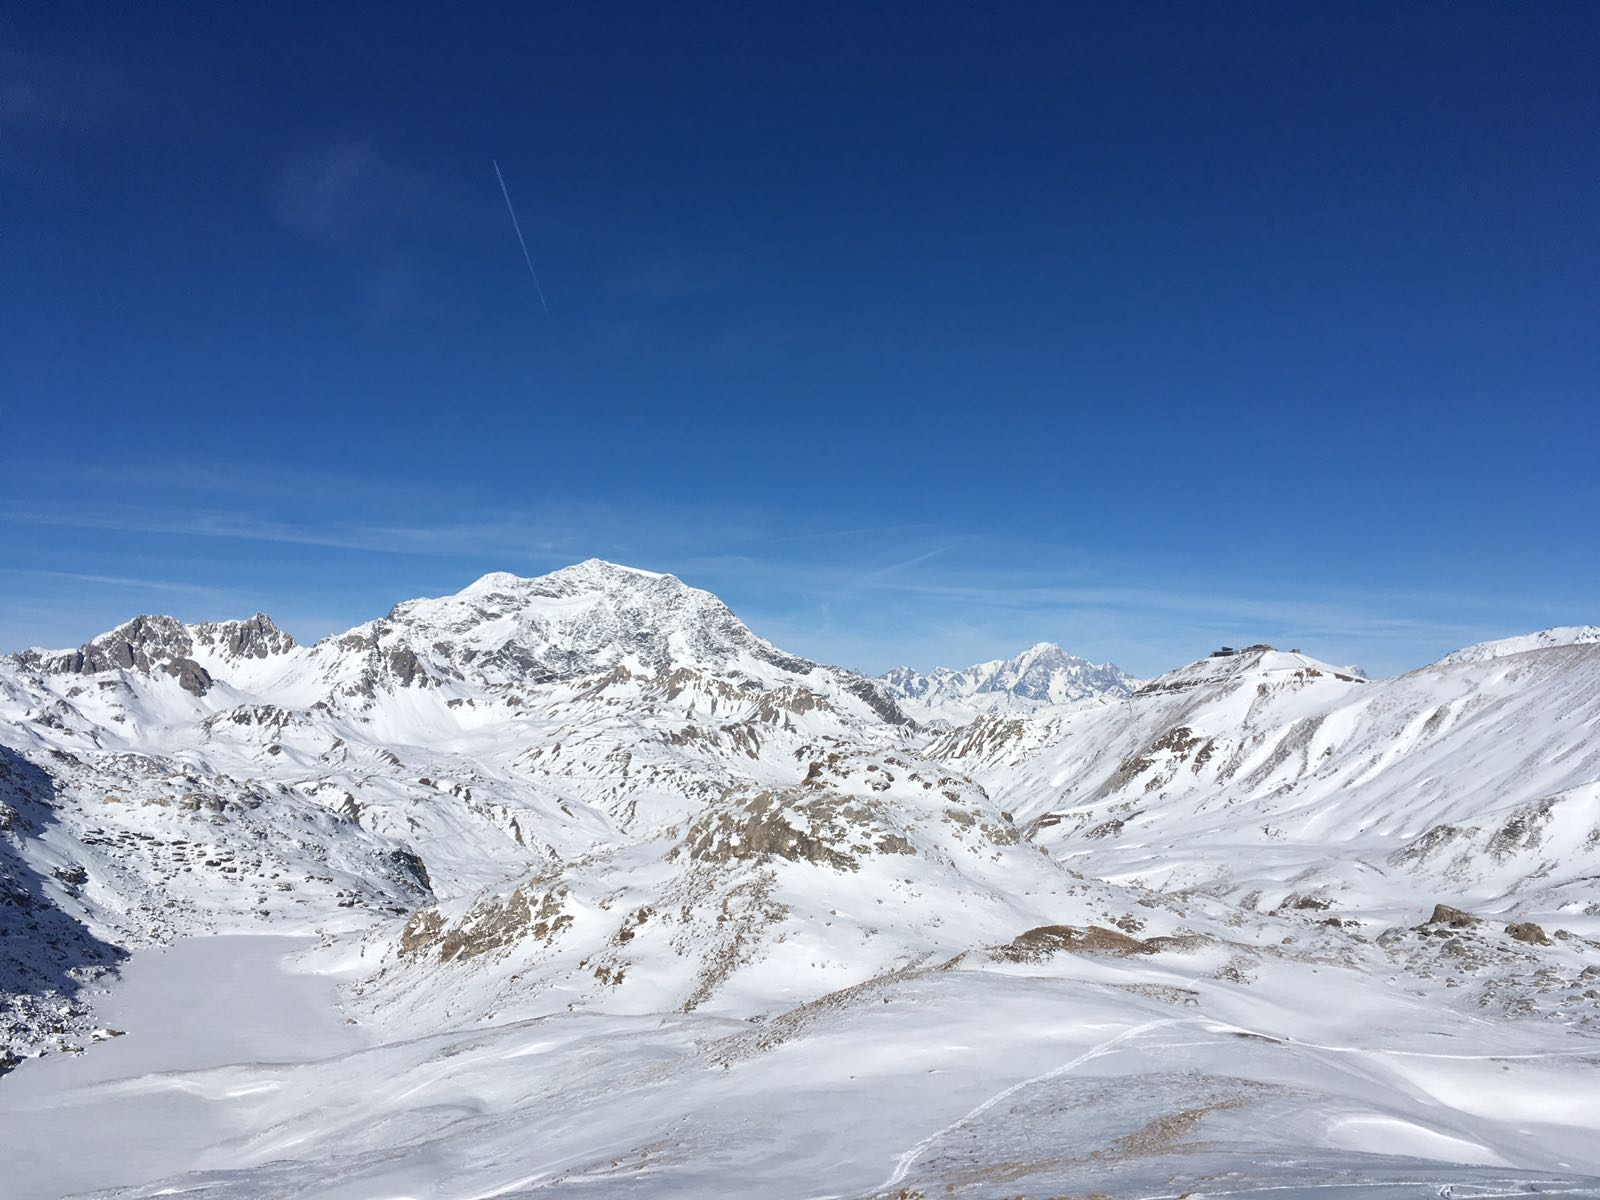 View of Tignes ski area these recent days